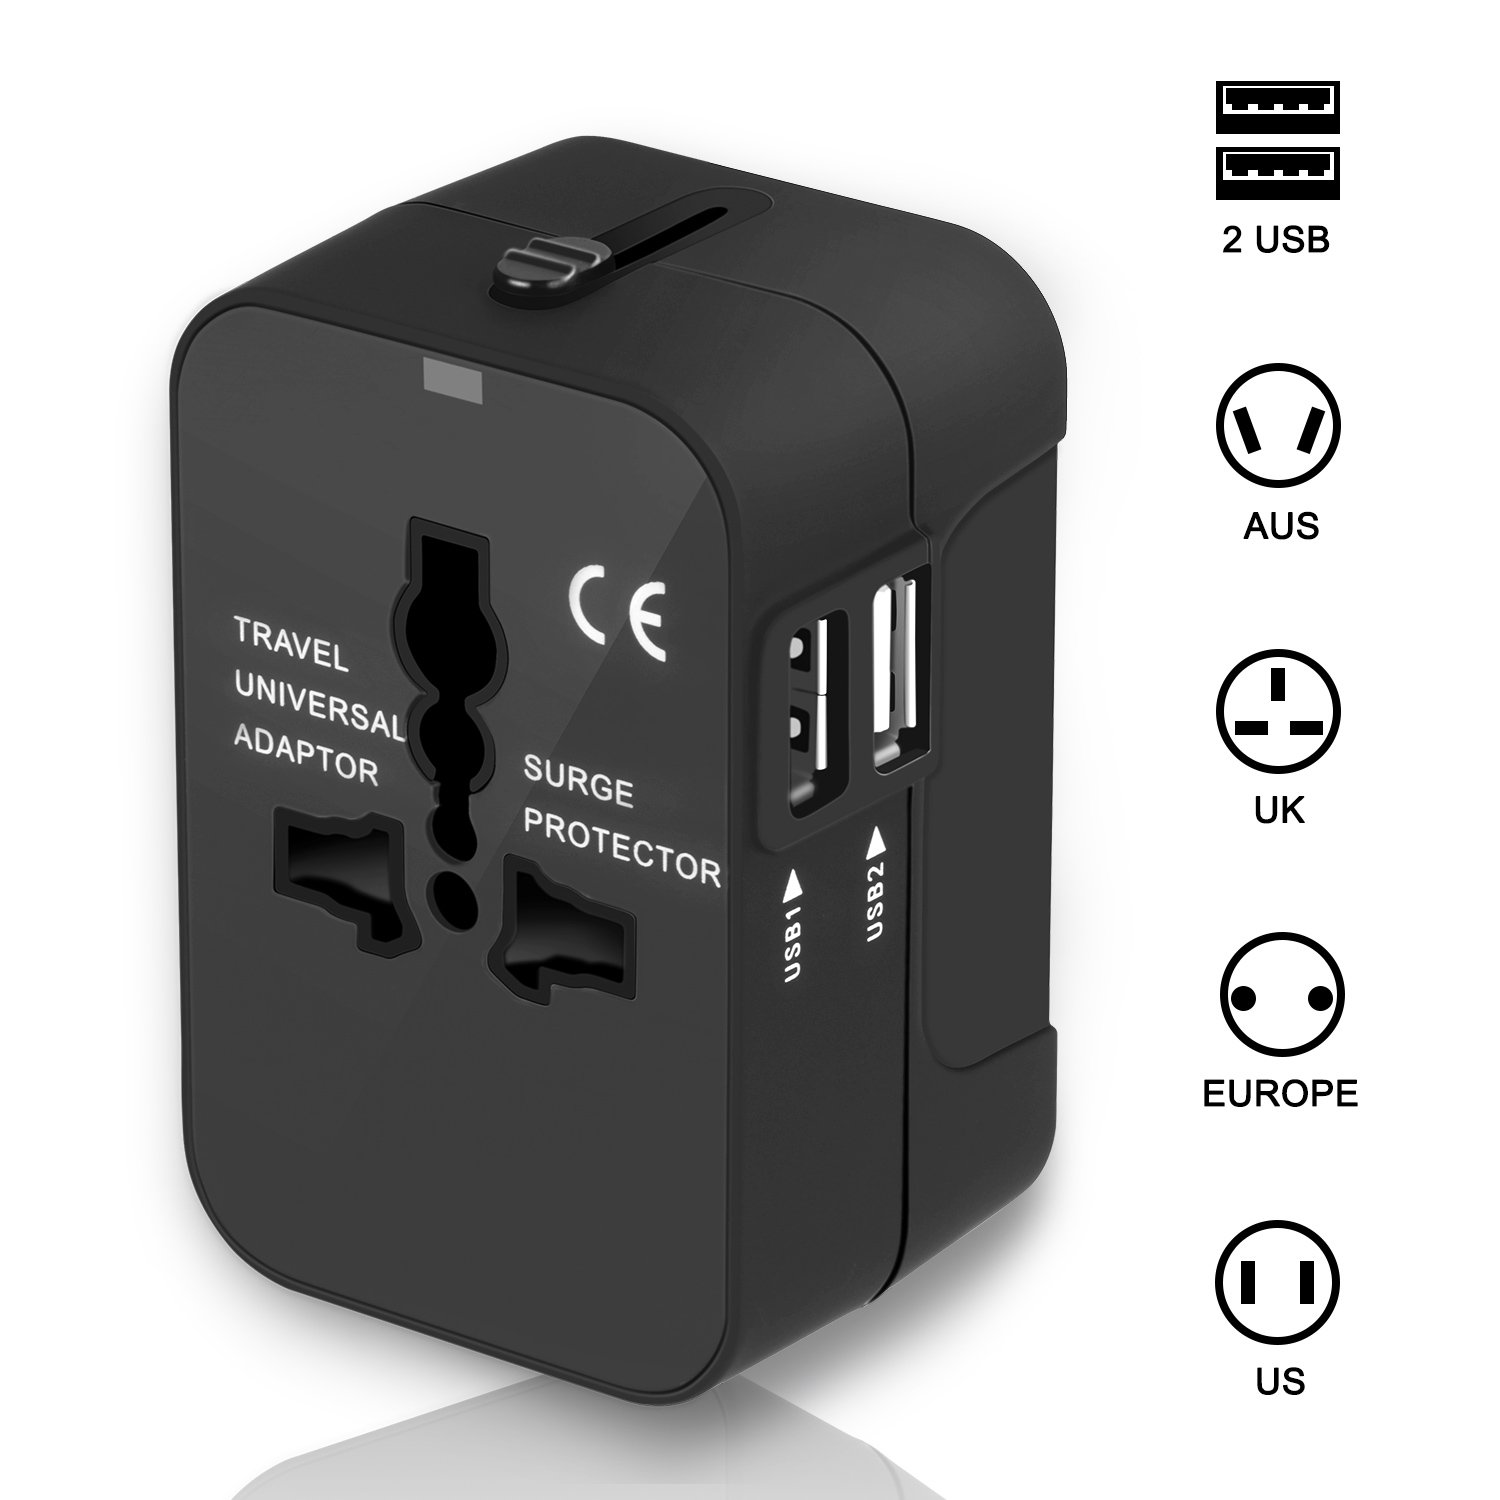 Travel Adapter, International Power Plug Converter UK Plug Adapter Kits  with Dual USB Ports Worldwide All in One AC Wall Outlet Charger Adapters  for